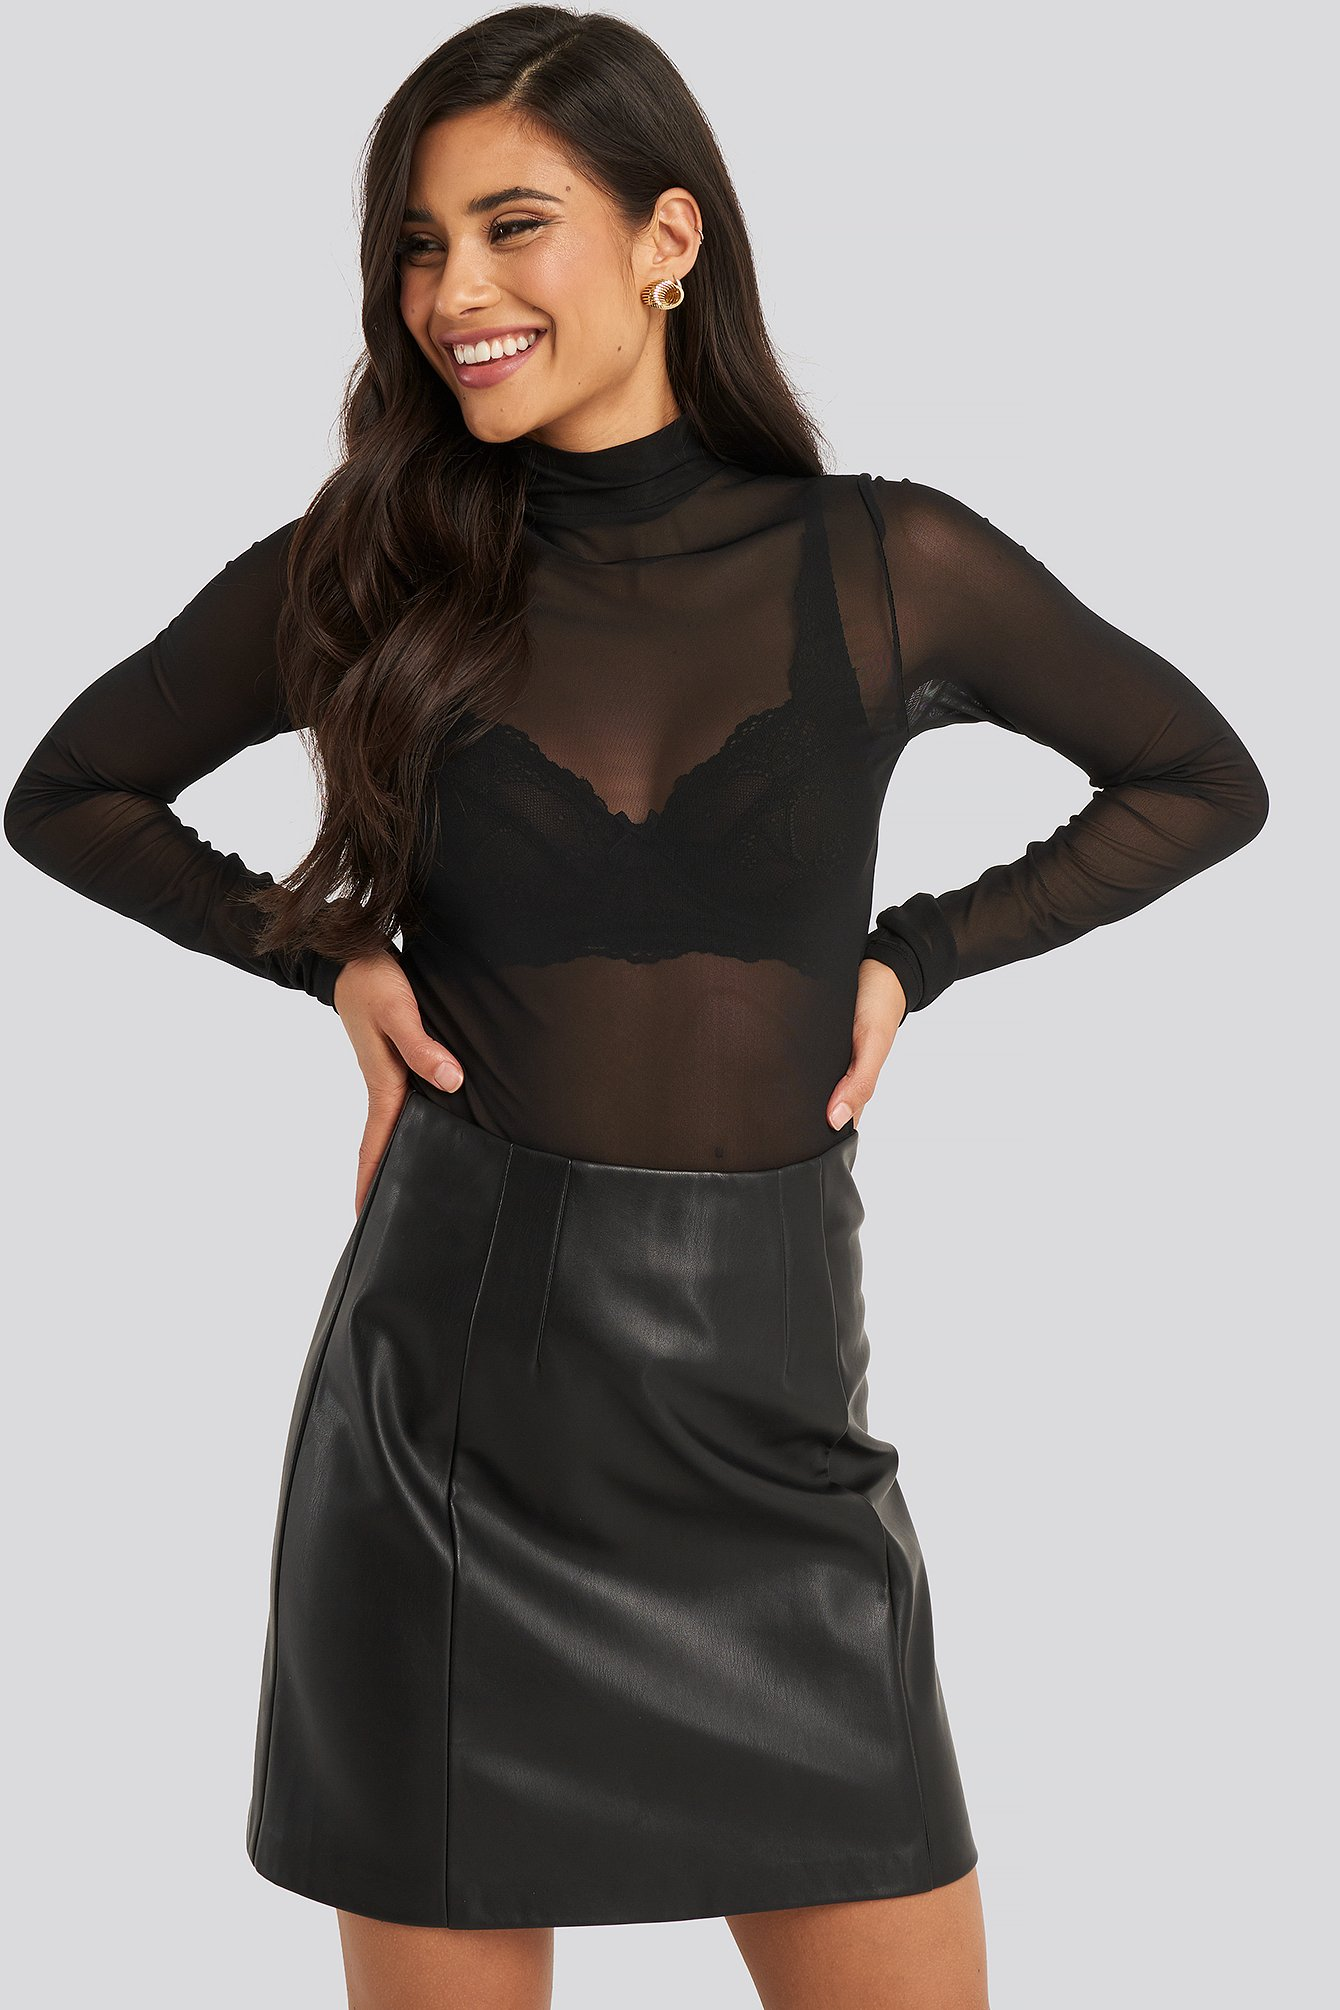 Black Polo Neck Mesh Top